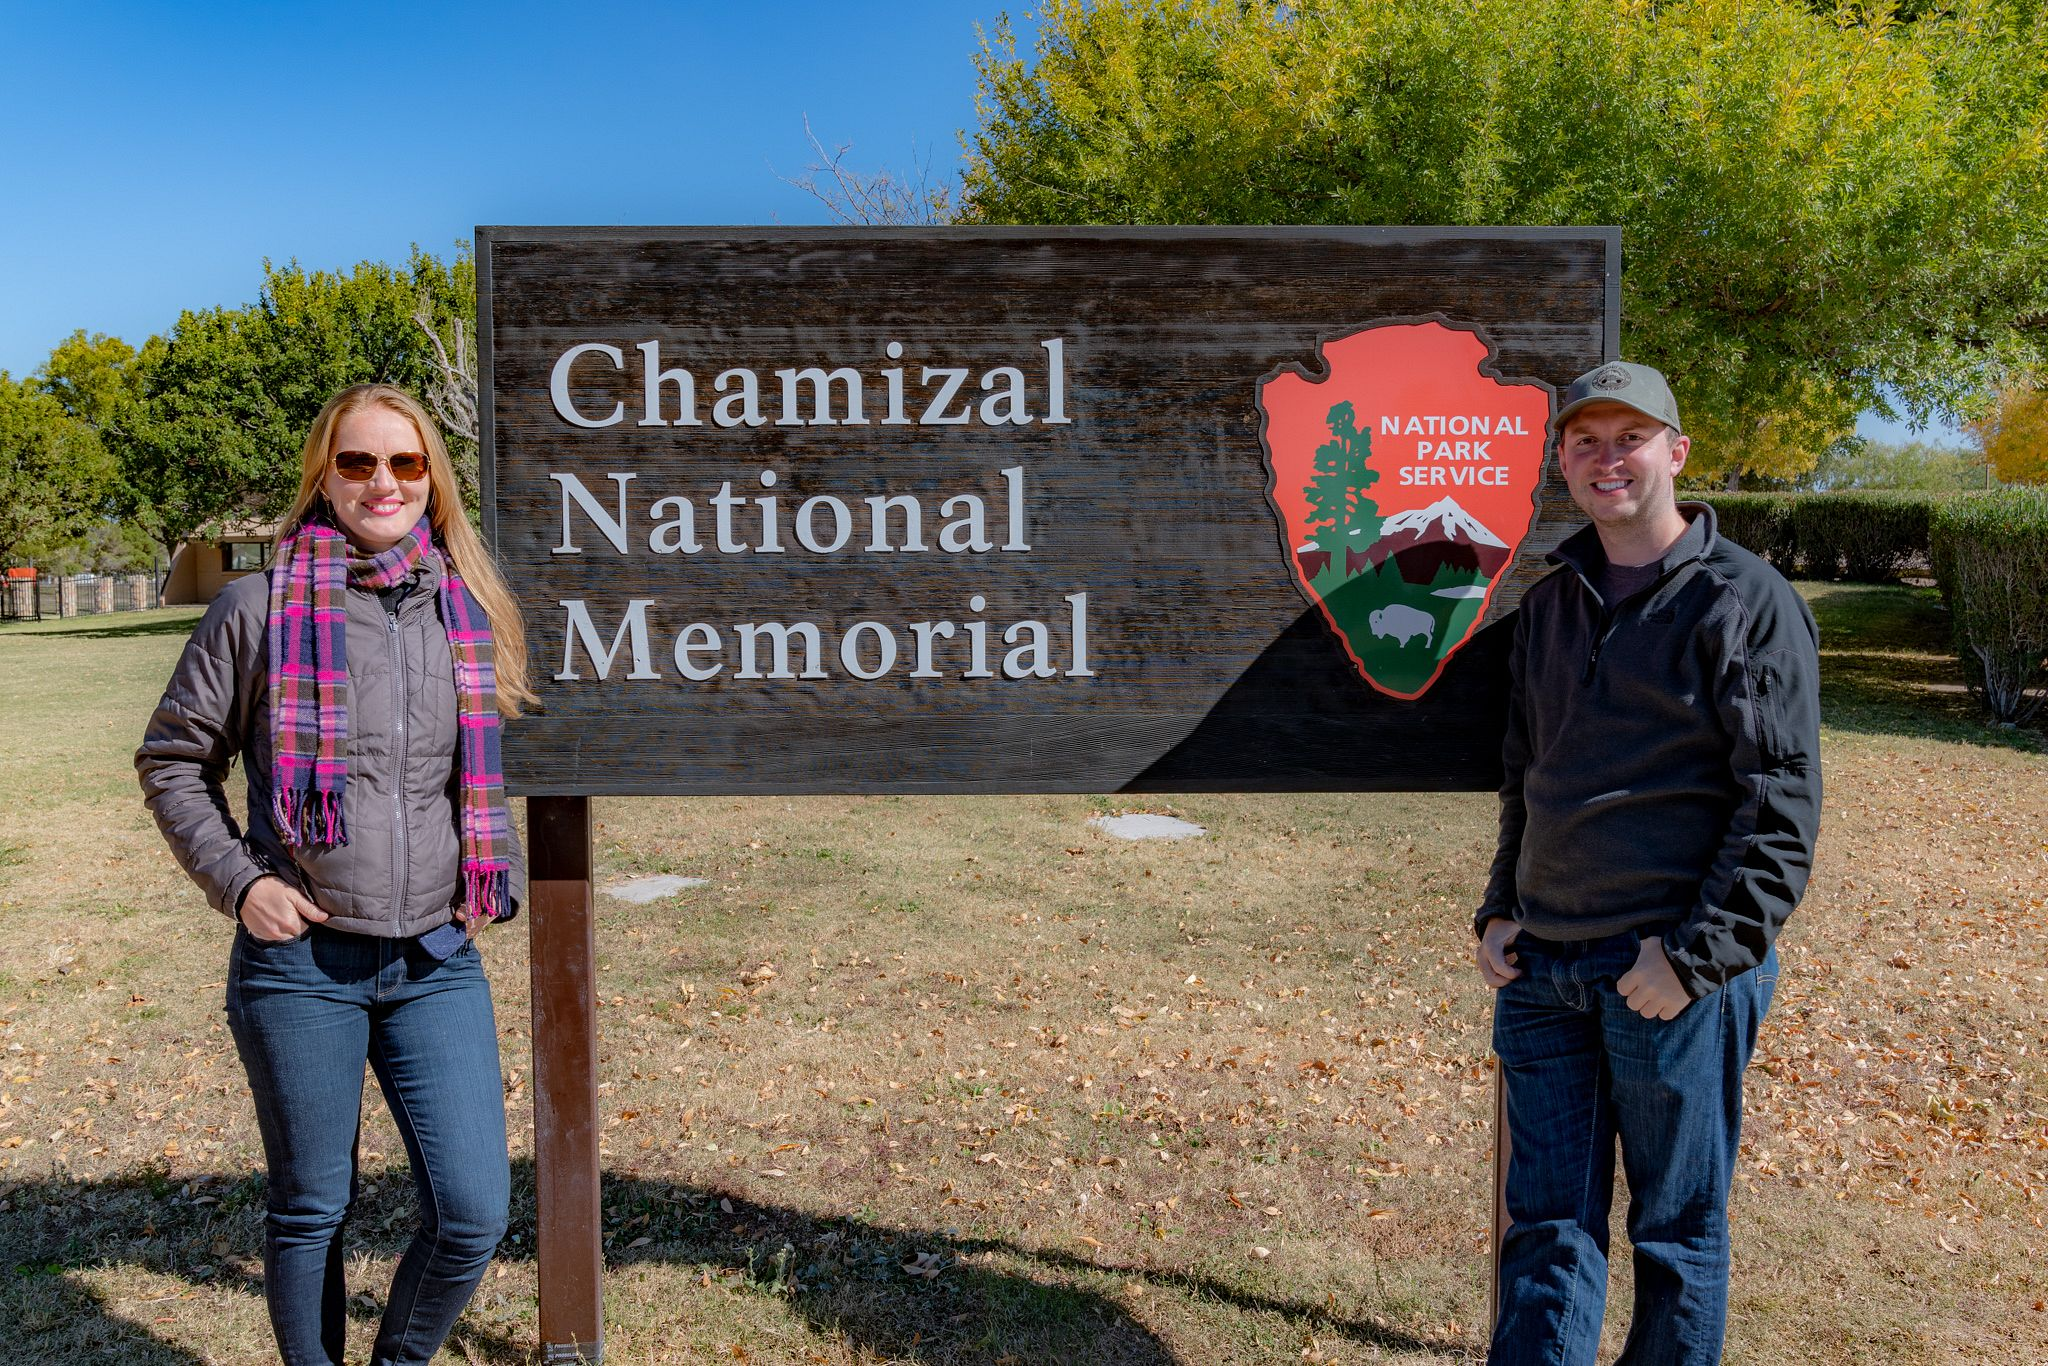 Chamizal National Monument